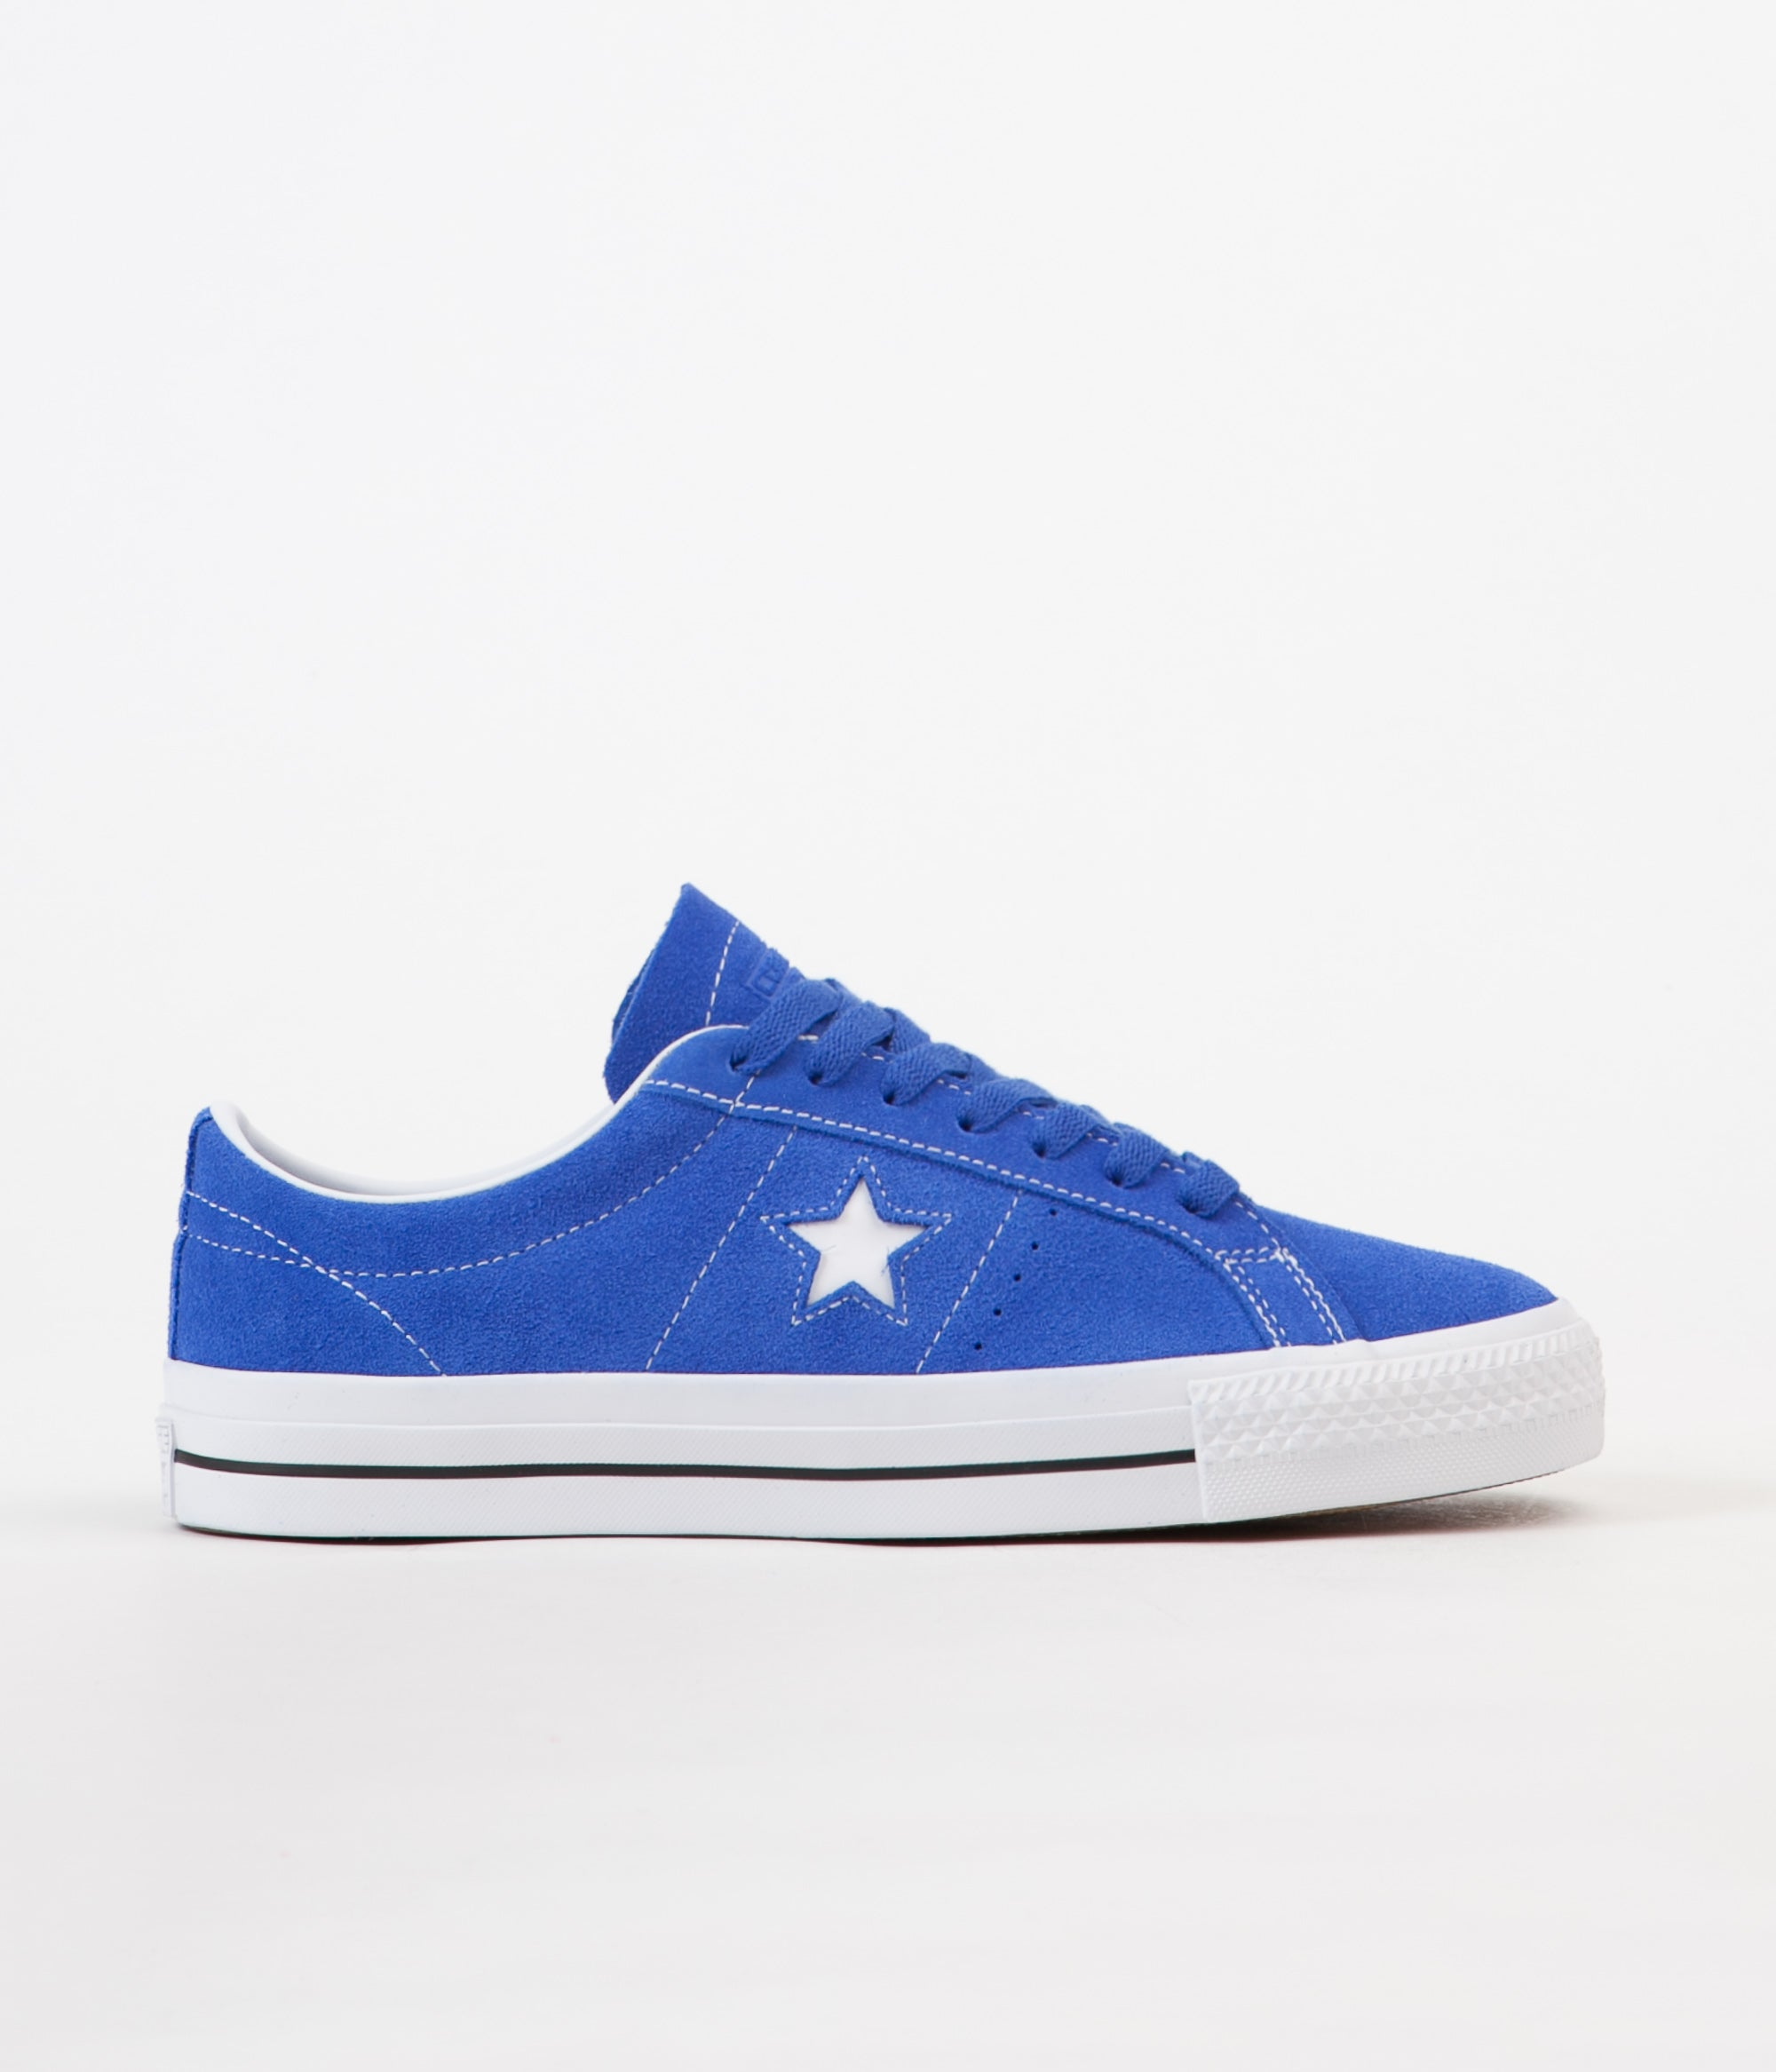 913421e83fb46c Converse One Star Pro Ox Shoes - Hyper Royal   White   Black